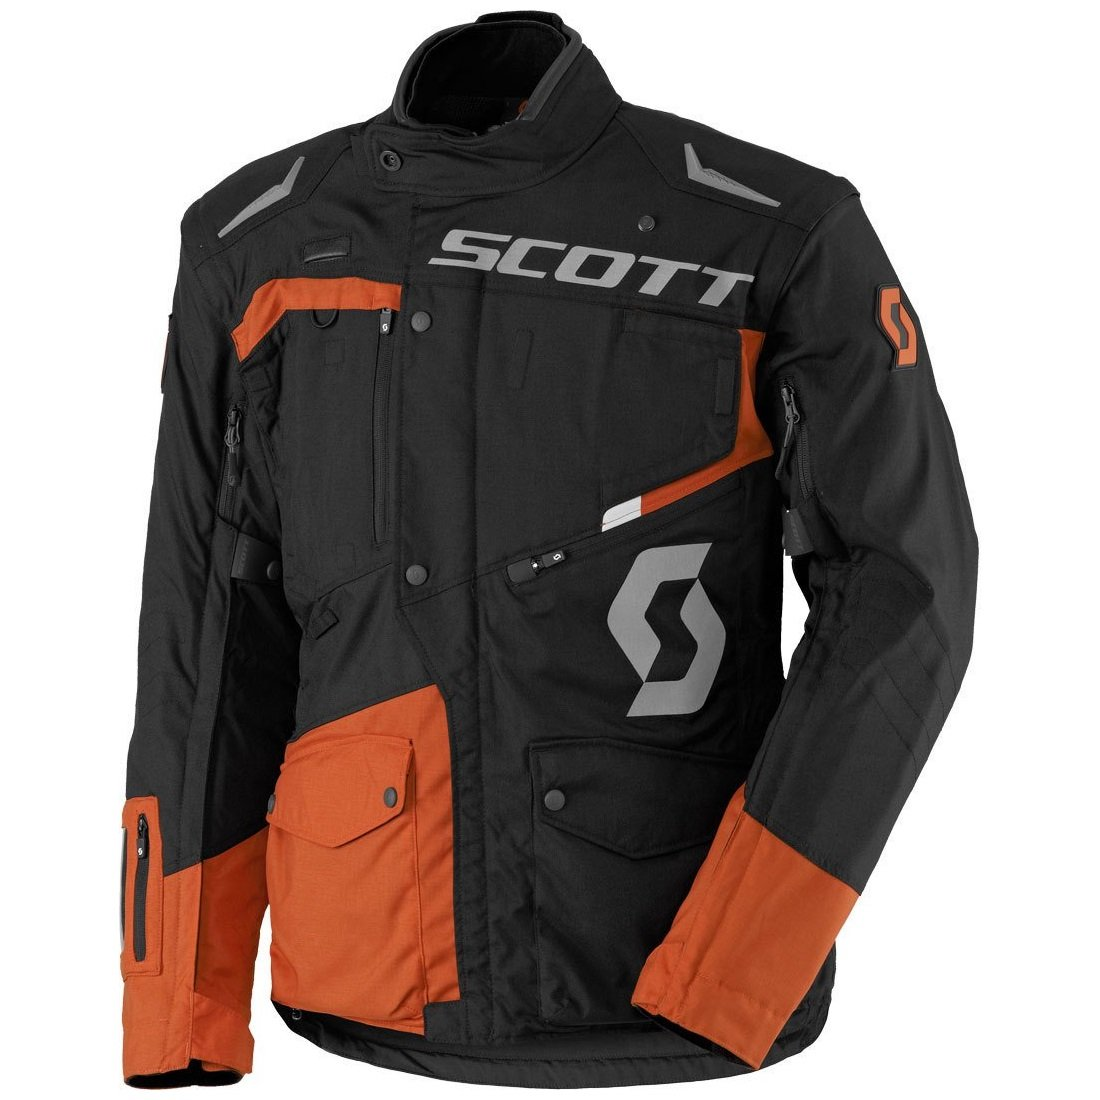 Scott Bunda Dualraid DP black/orange XL